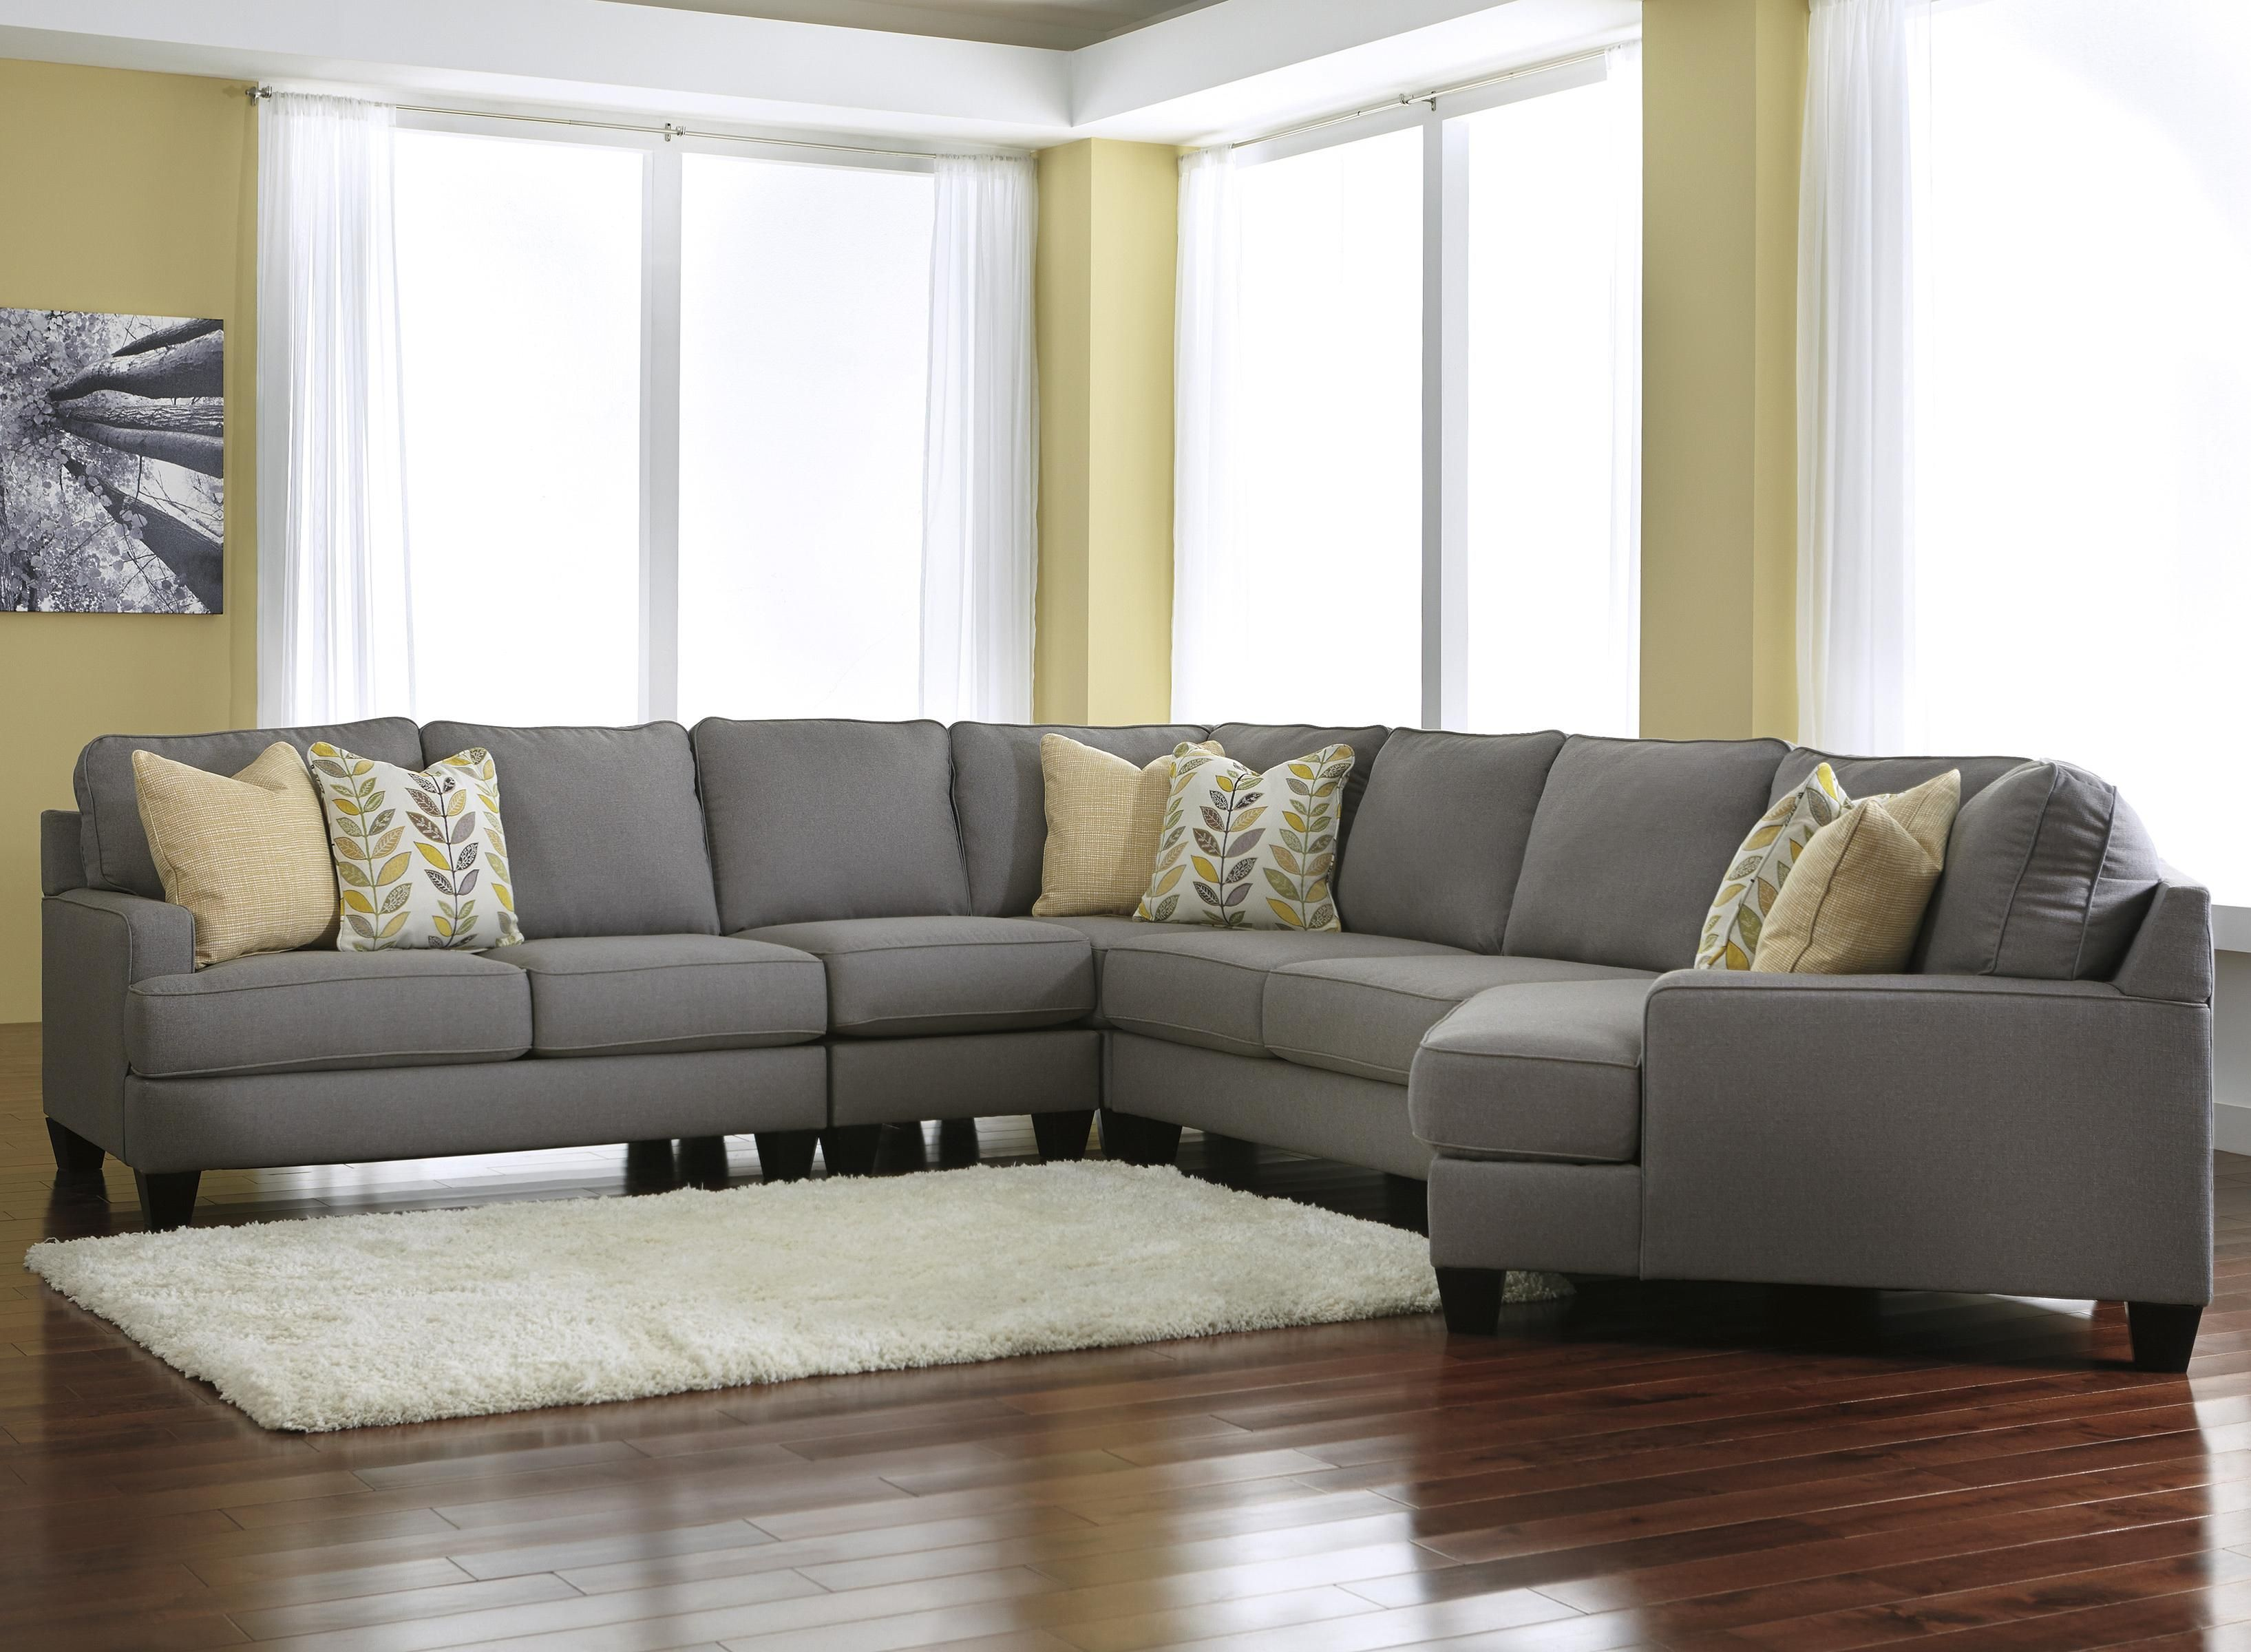 Living Room Designs With Sectionals Fascinating Chamberly  Alloy Modern 5Piece Sectional Sofa With Right Cuddler Design Decoration